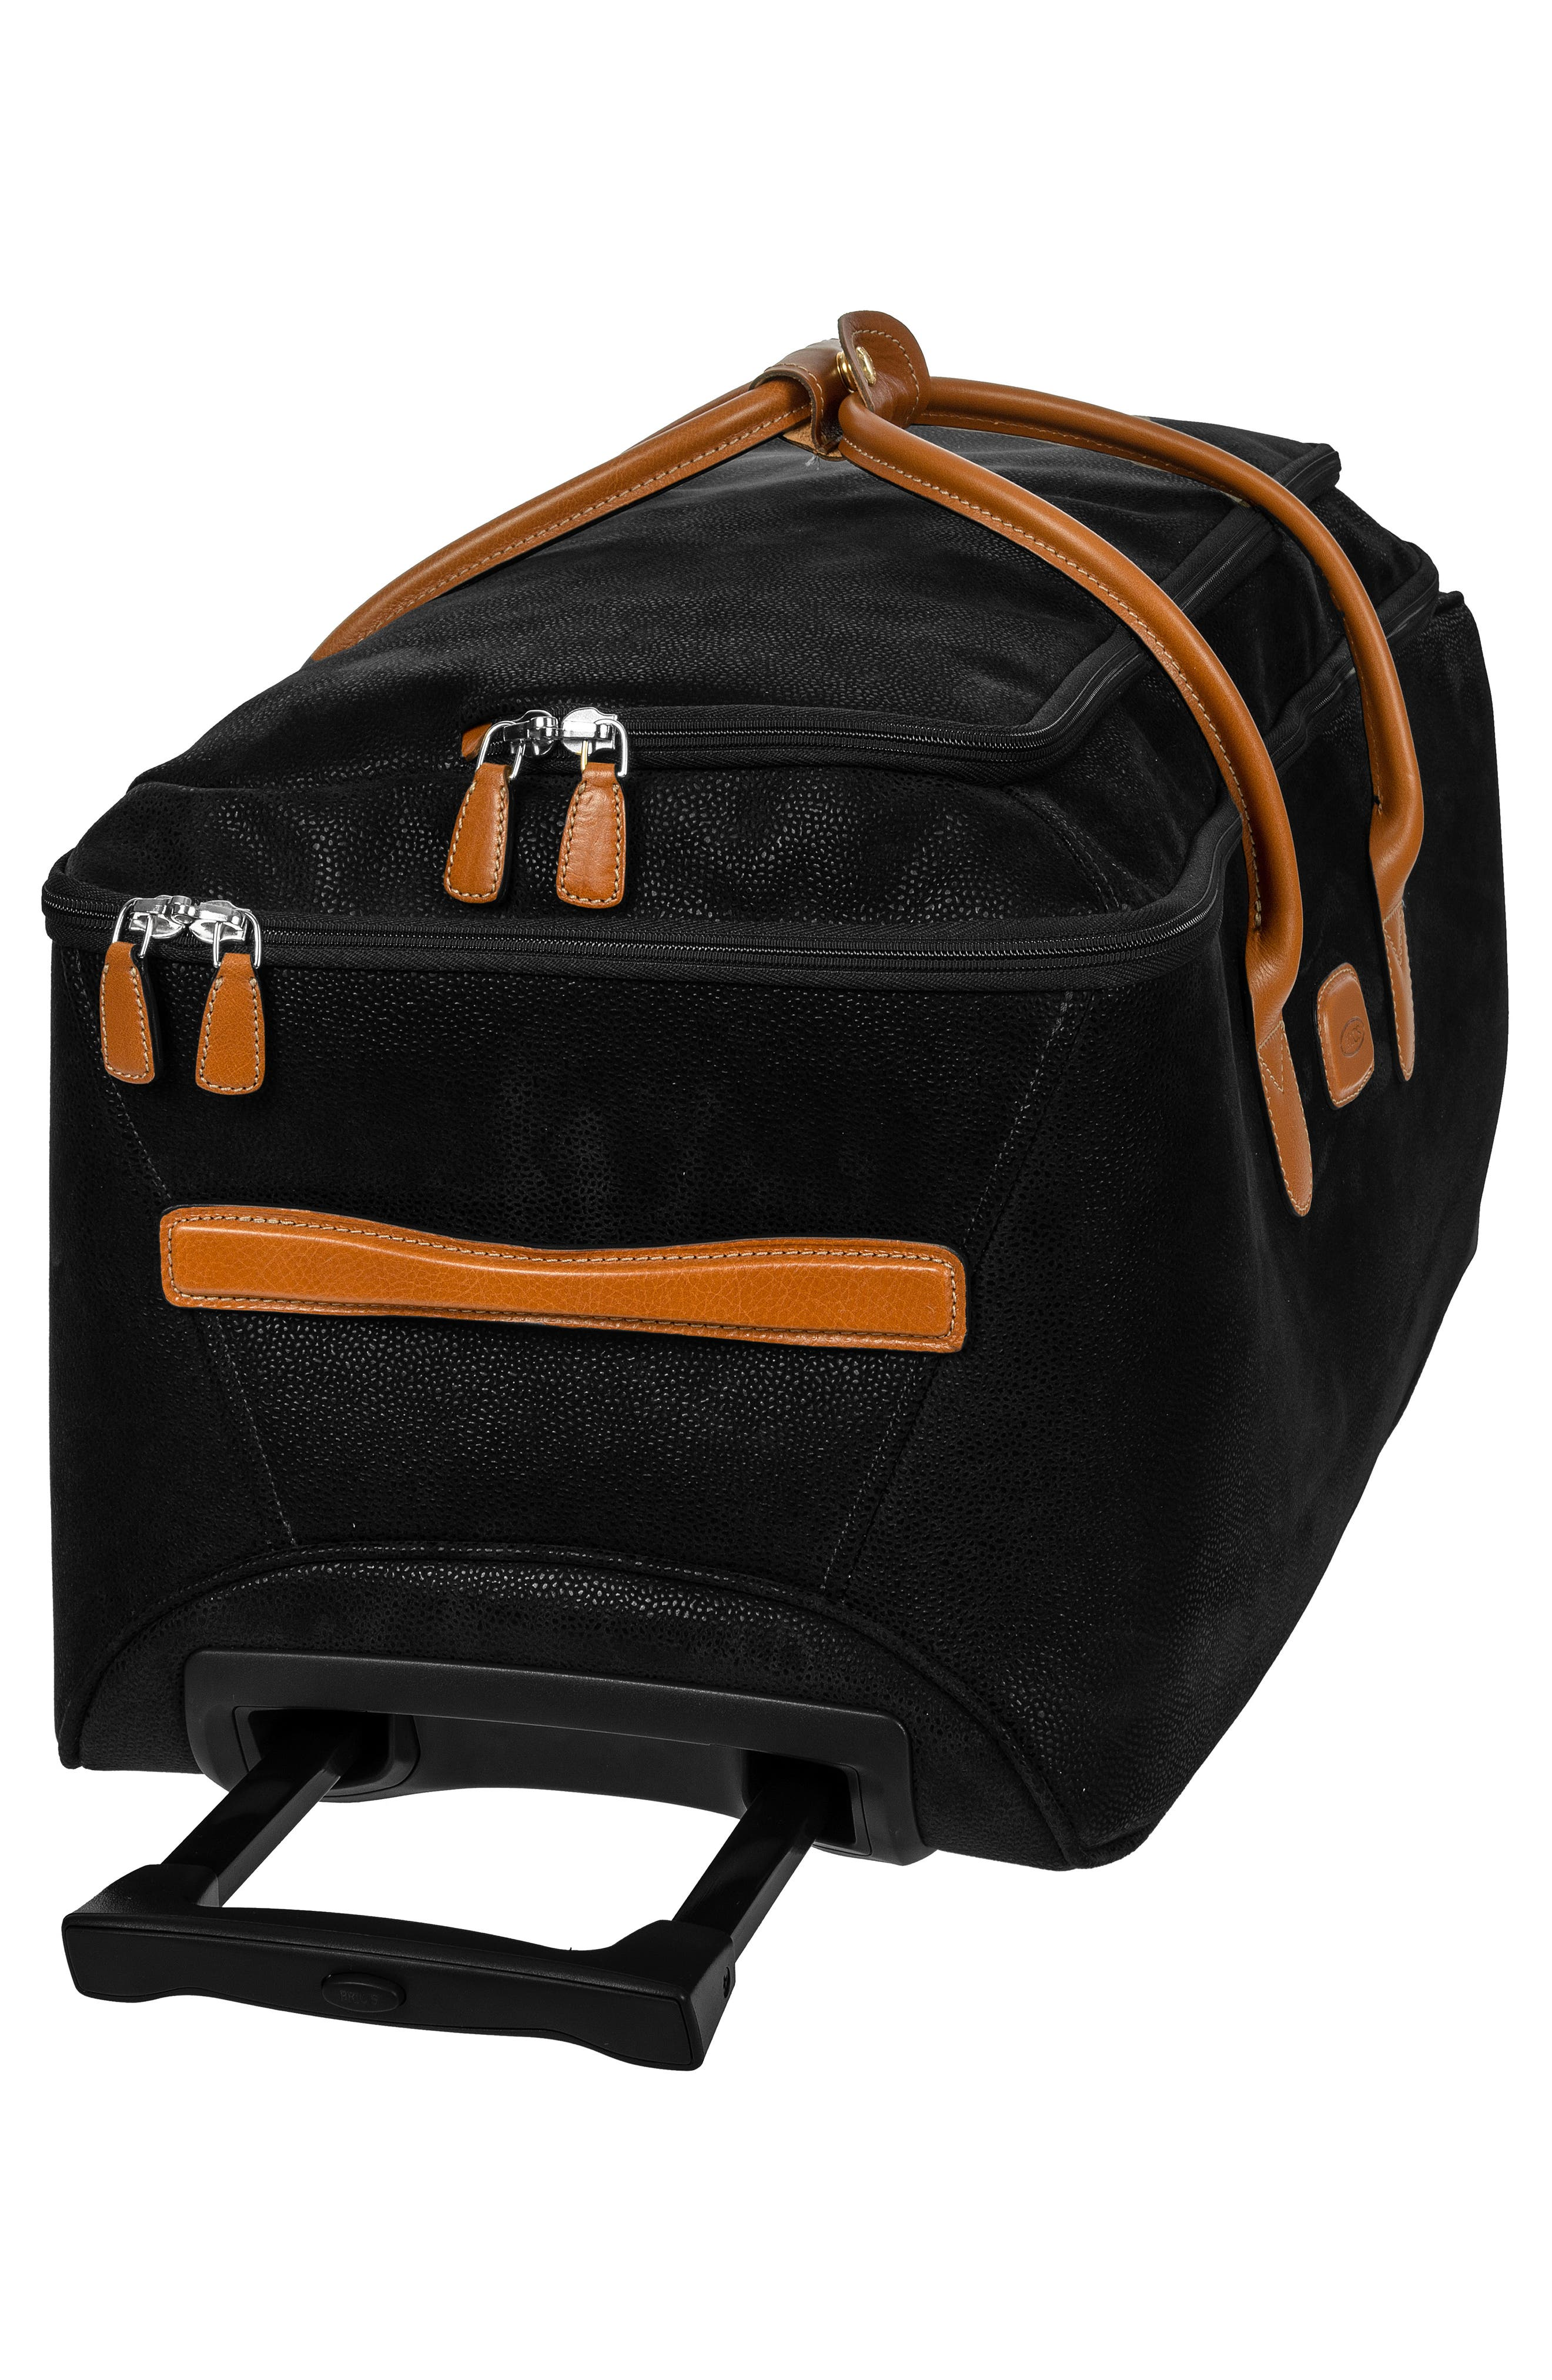 Life Collection 28-Inch Rolling Duffel Bag,                             Alternate thumbnail 5, color,                             007